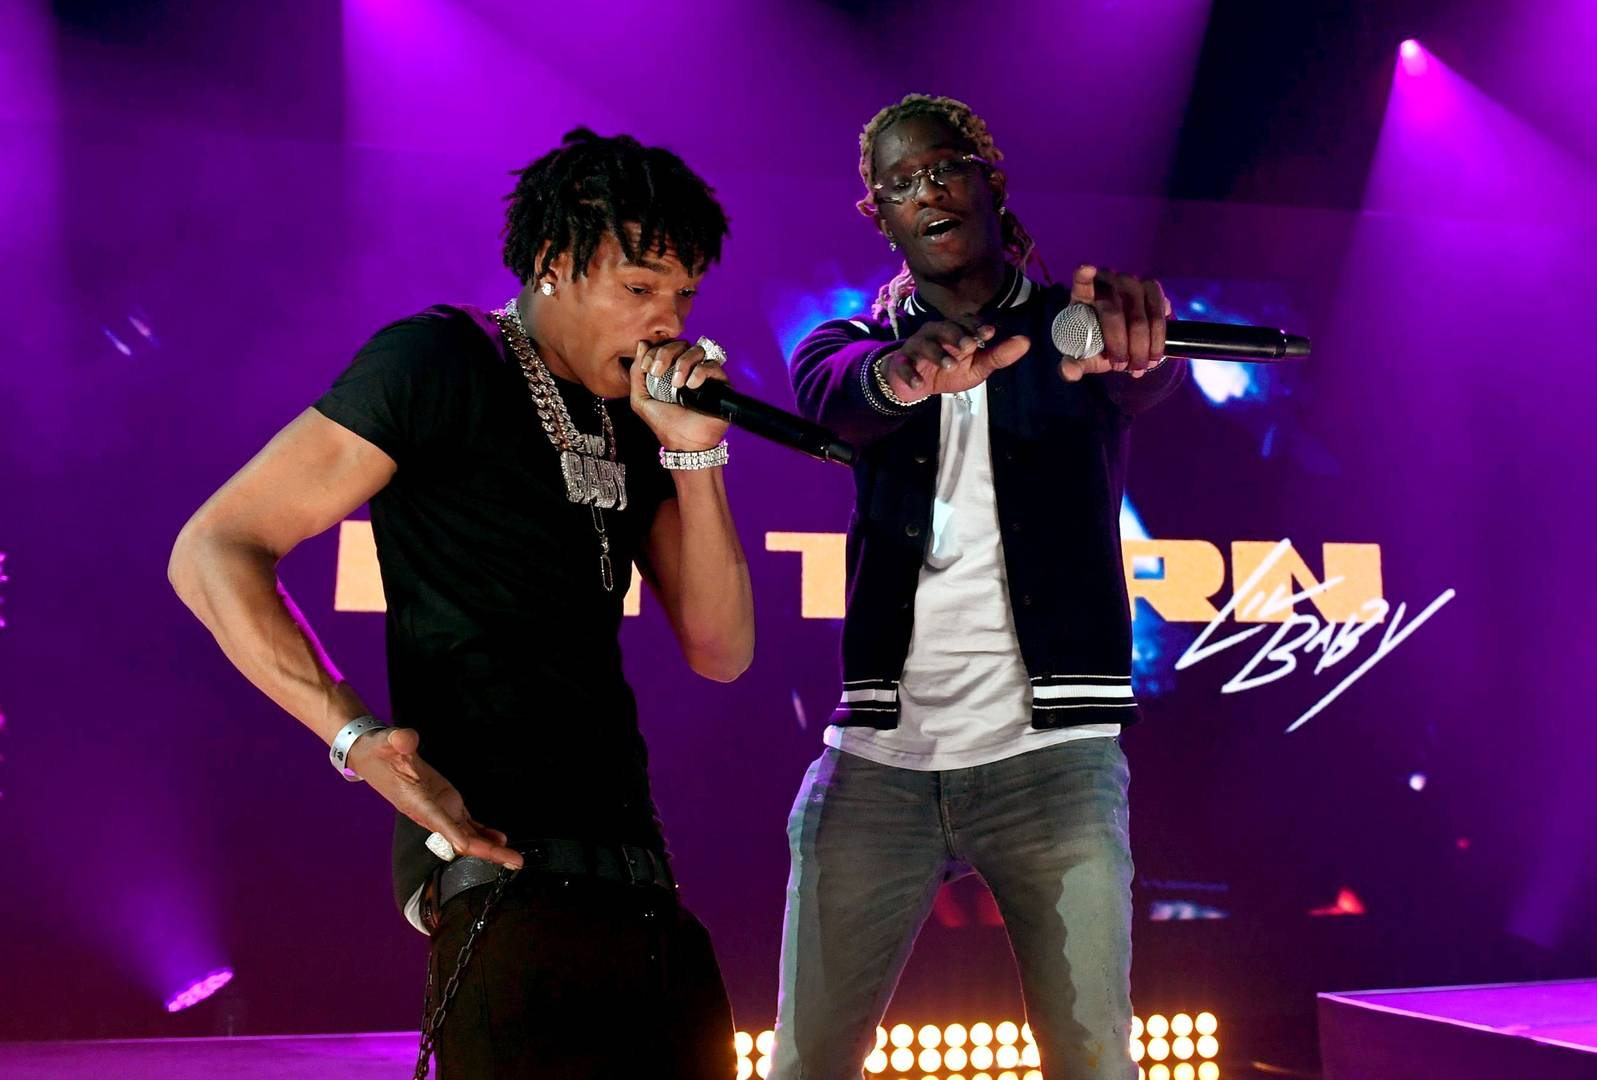 Lil Baby & Young Thug